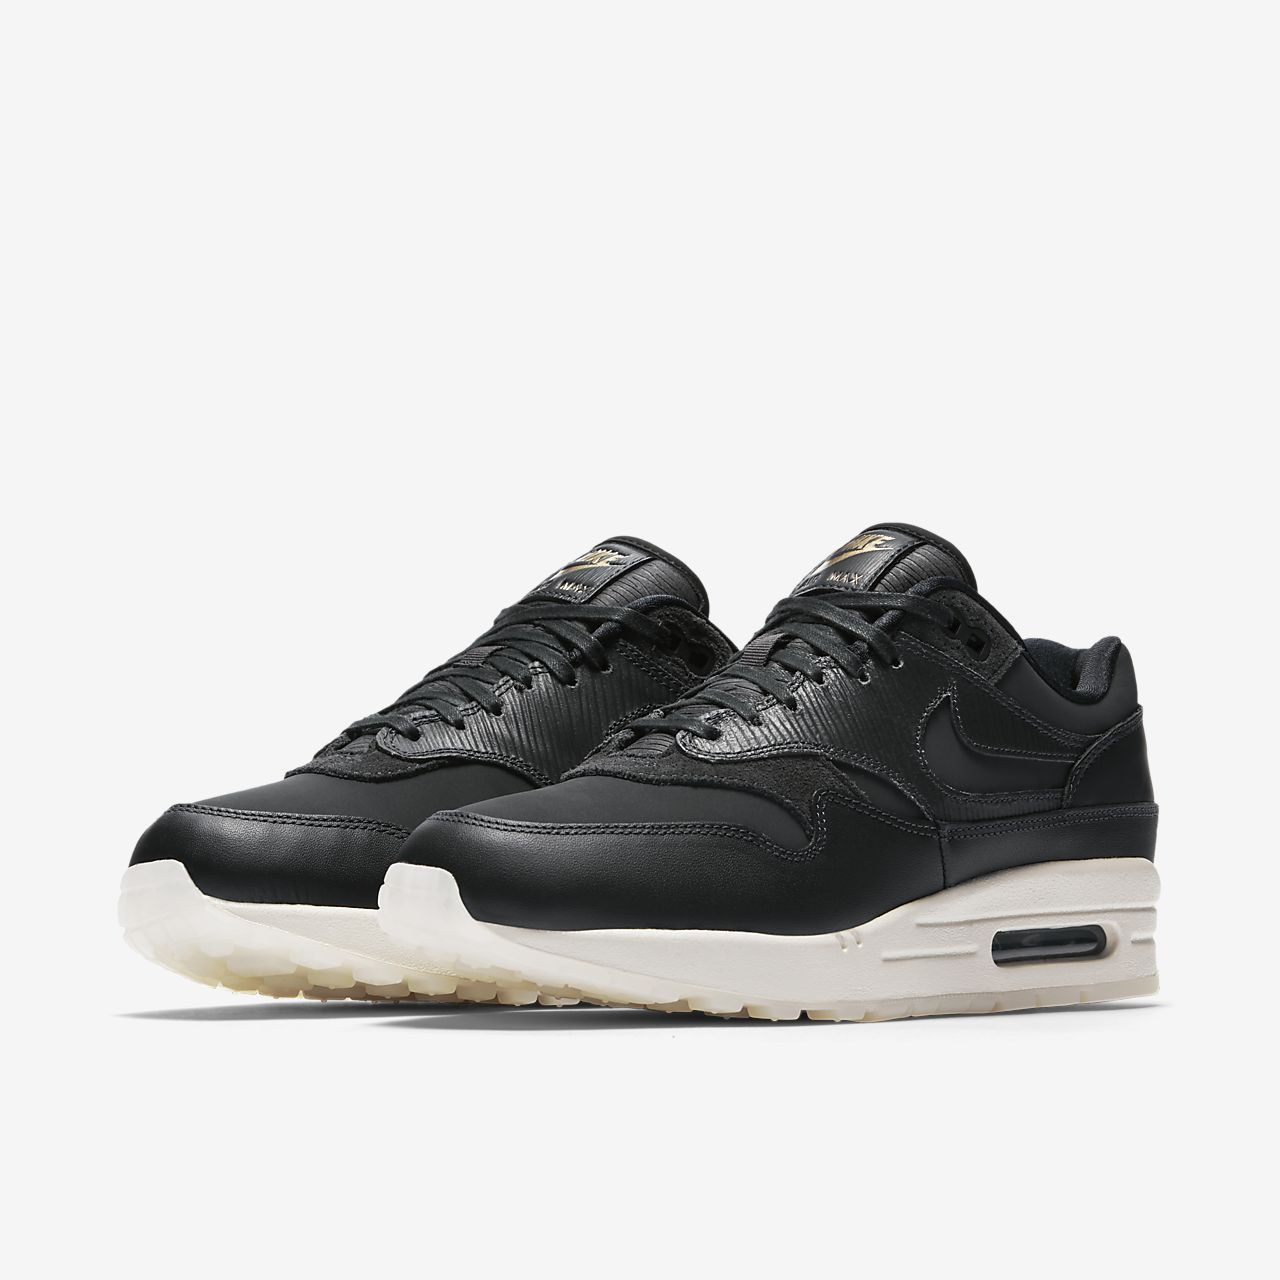 nike sportswear air max 1 premium womens nz